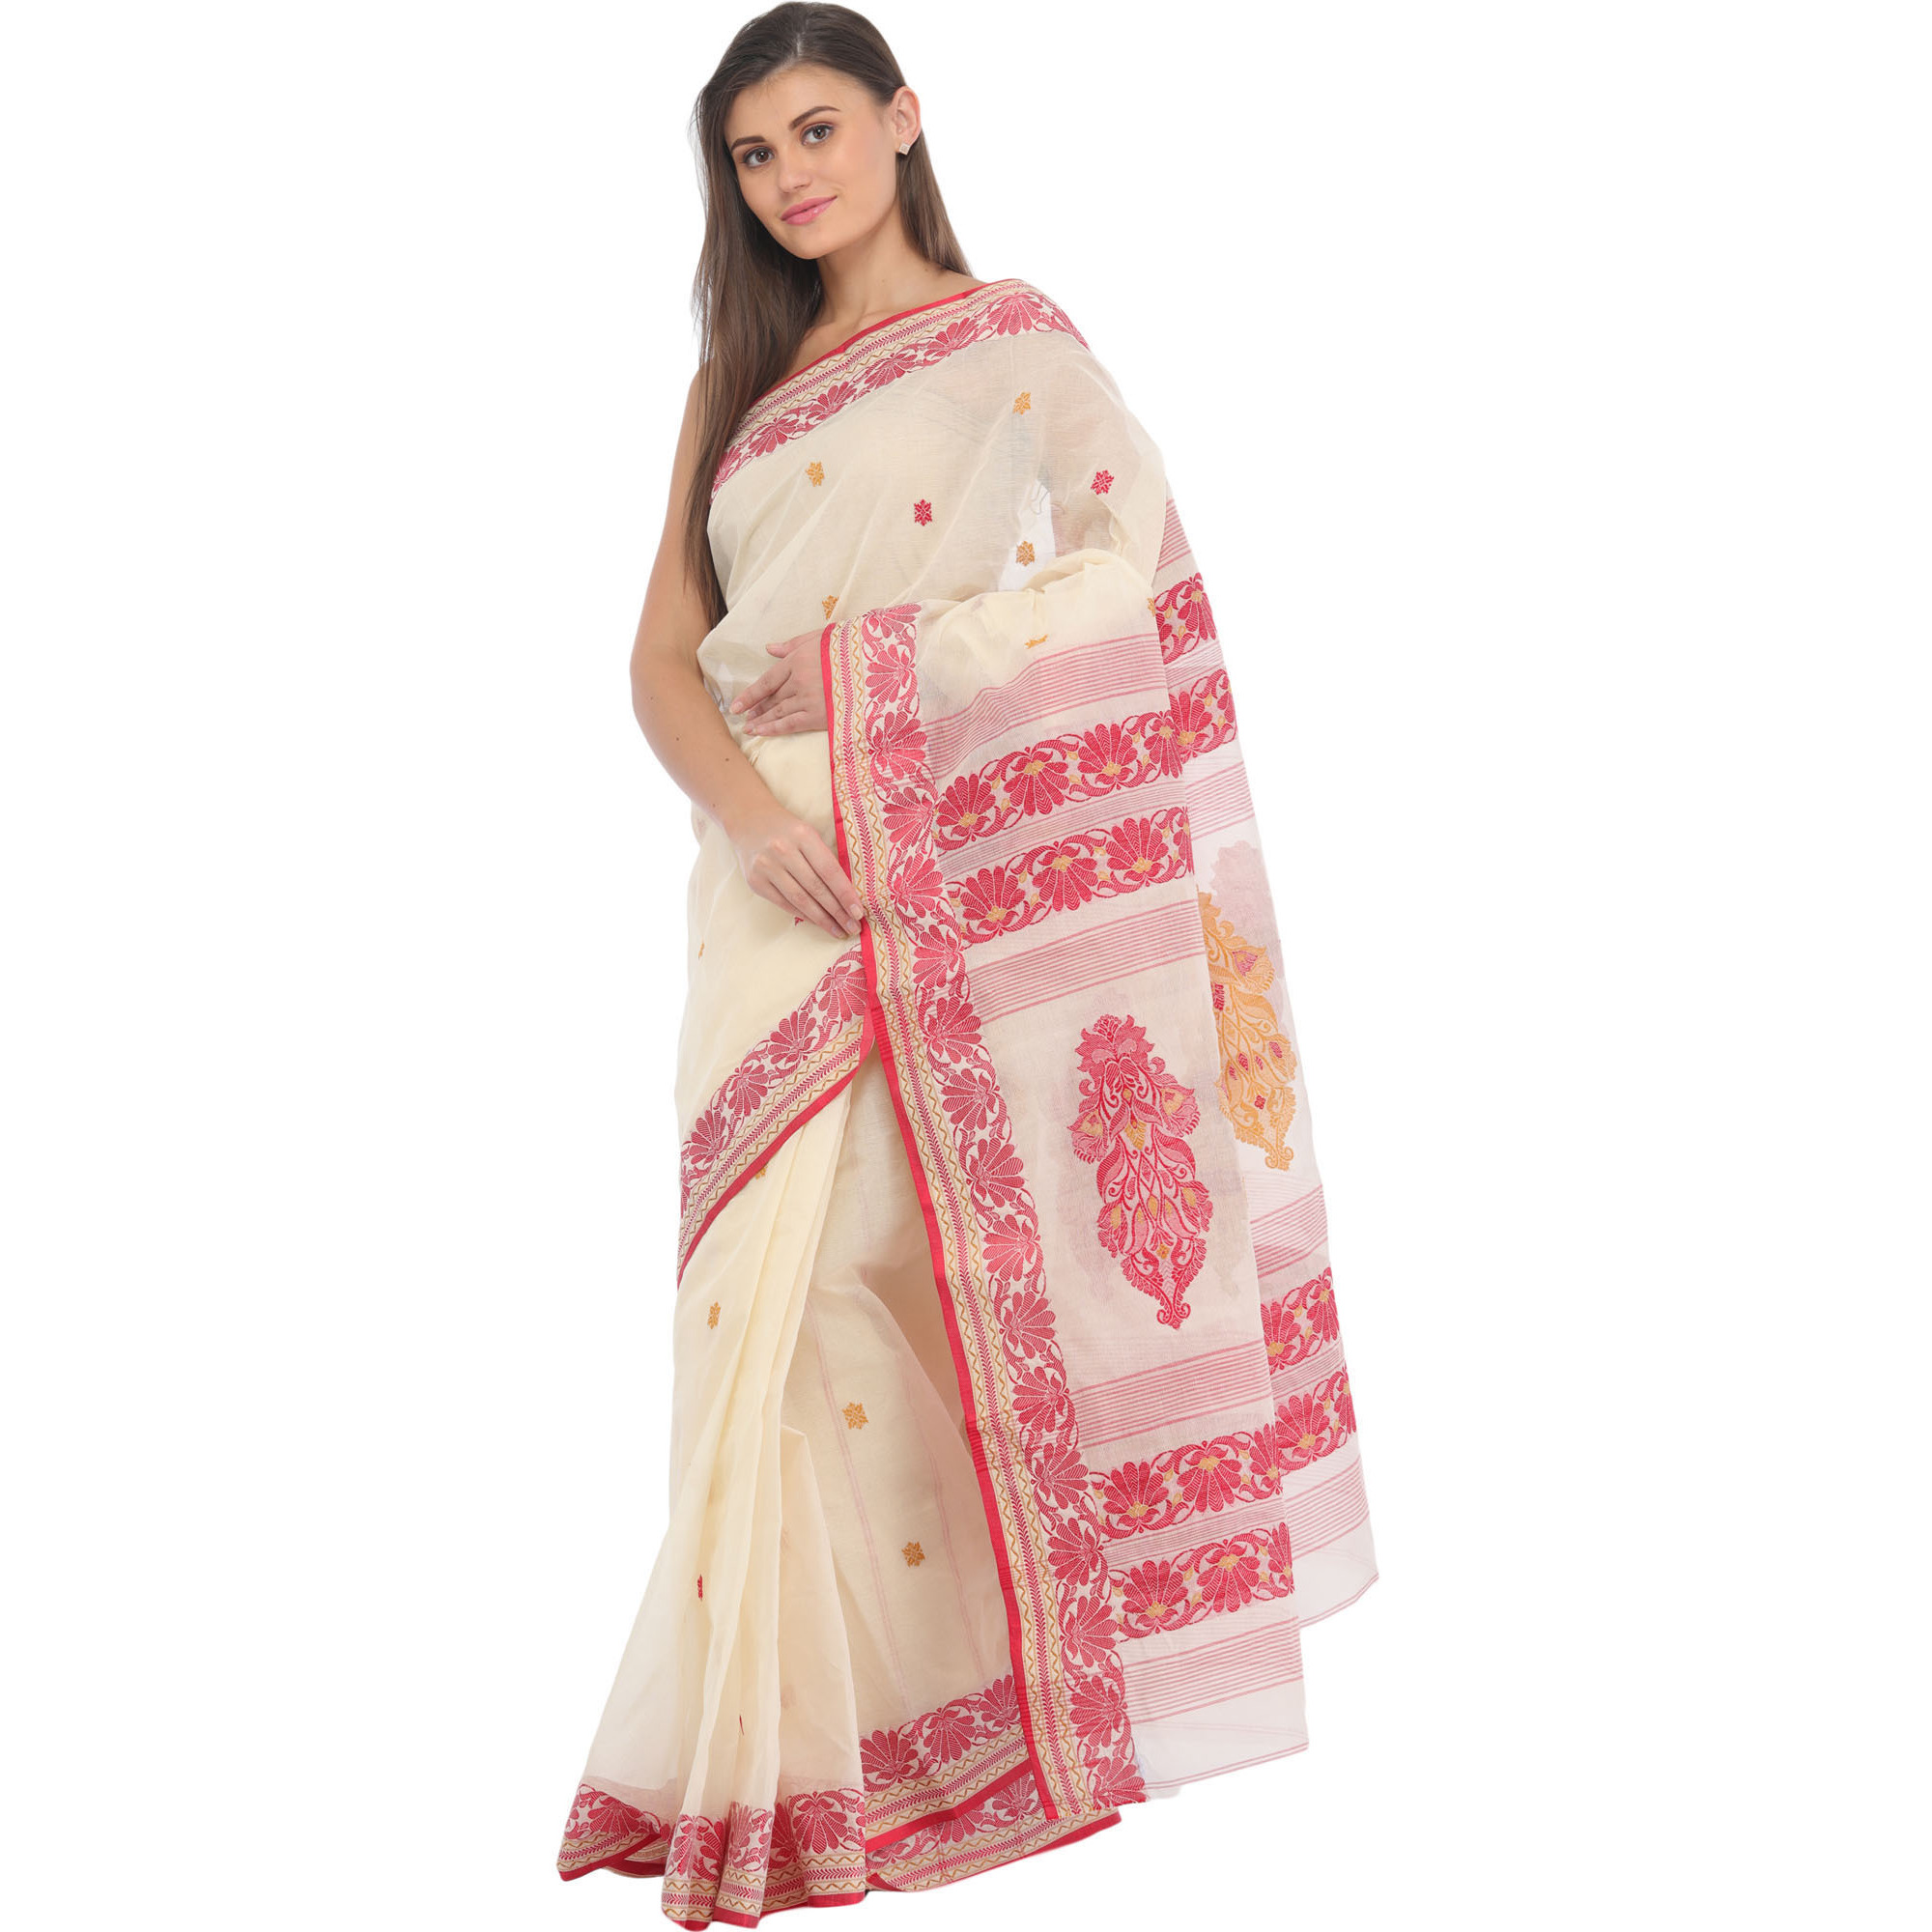 Ivory and Red Purbasthali Tangail Sari from Bengal with Woven Floral Motifs on Pallu